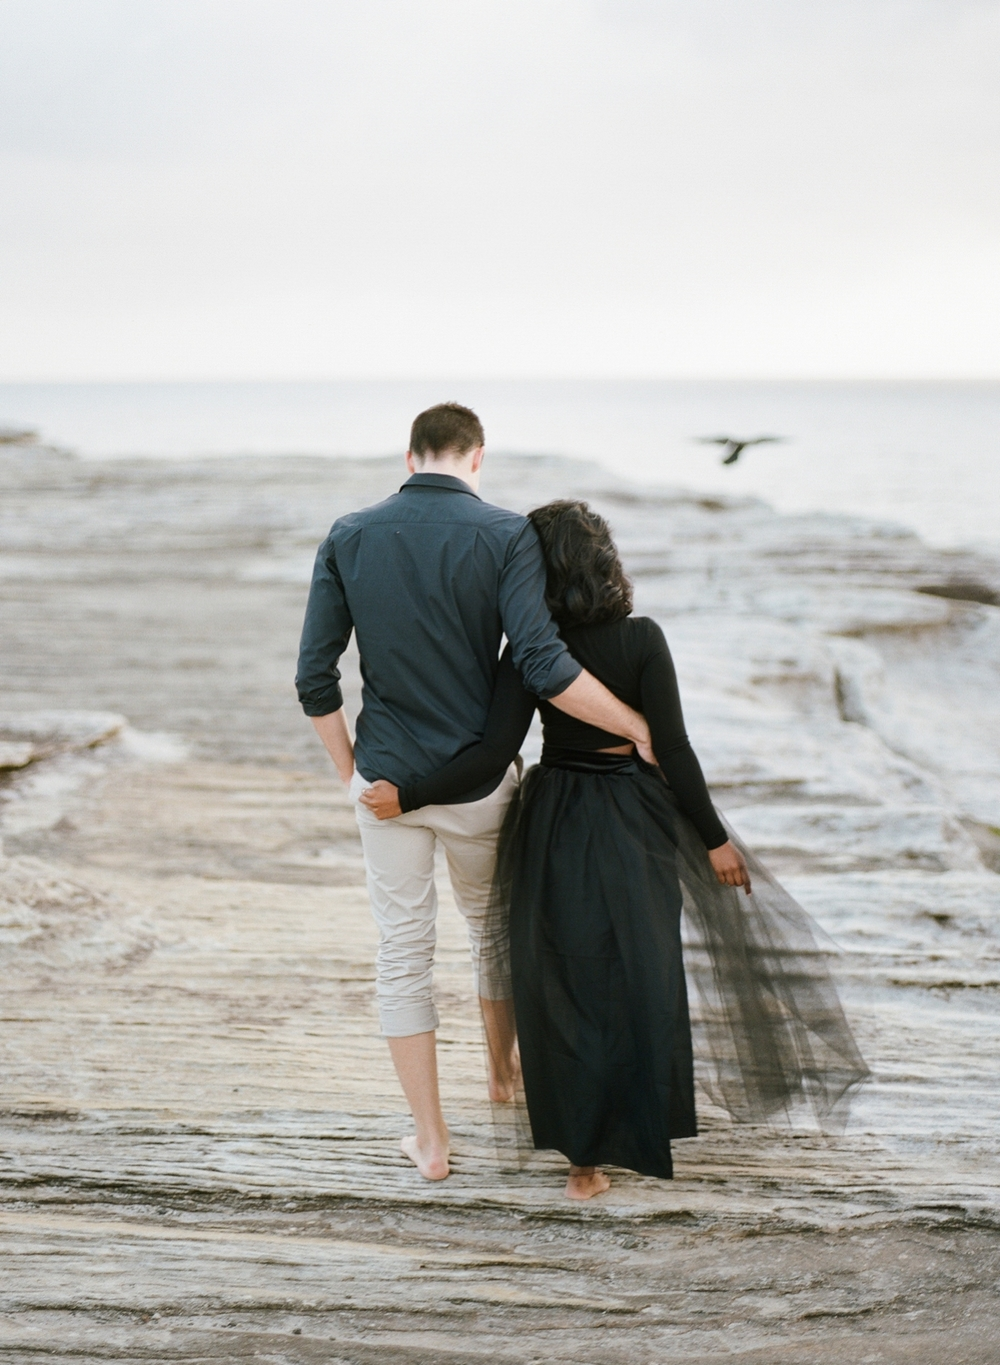 Coastal Sydney couples session by Mr Edwards Photography_0737_1150.jpg